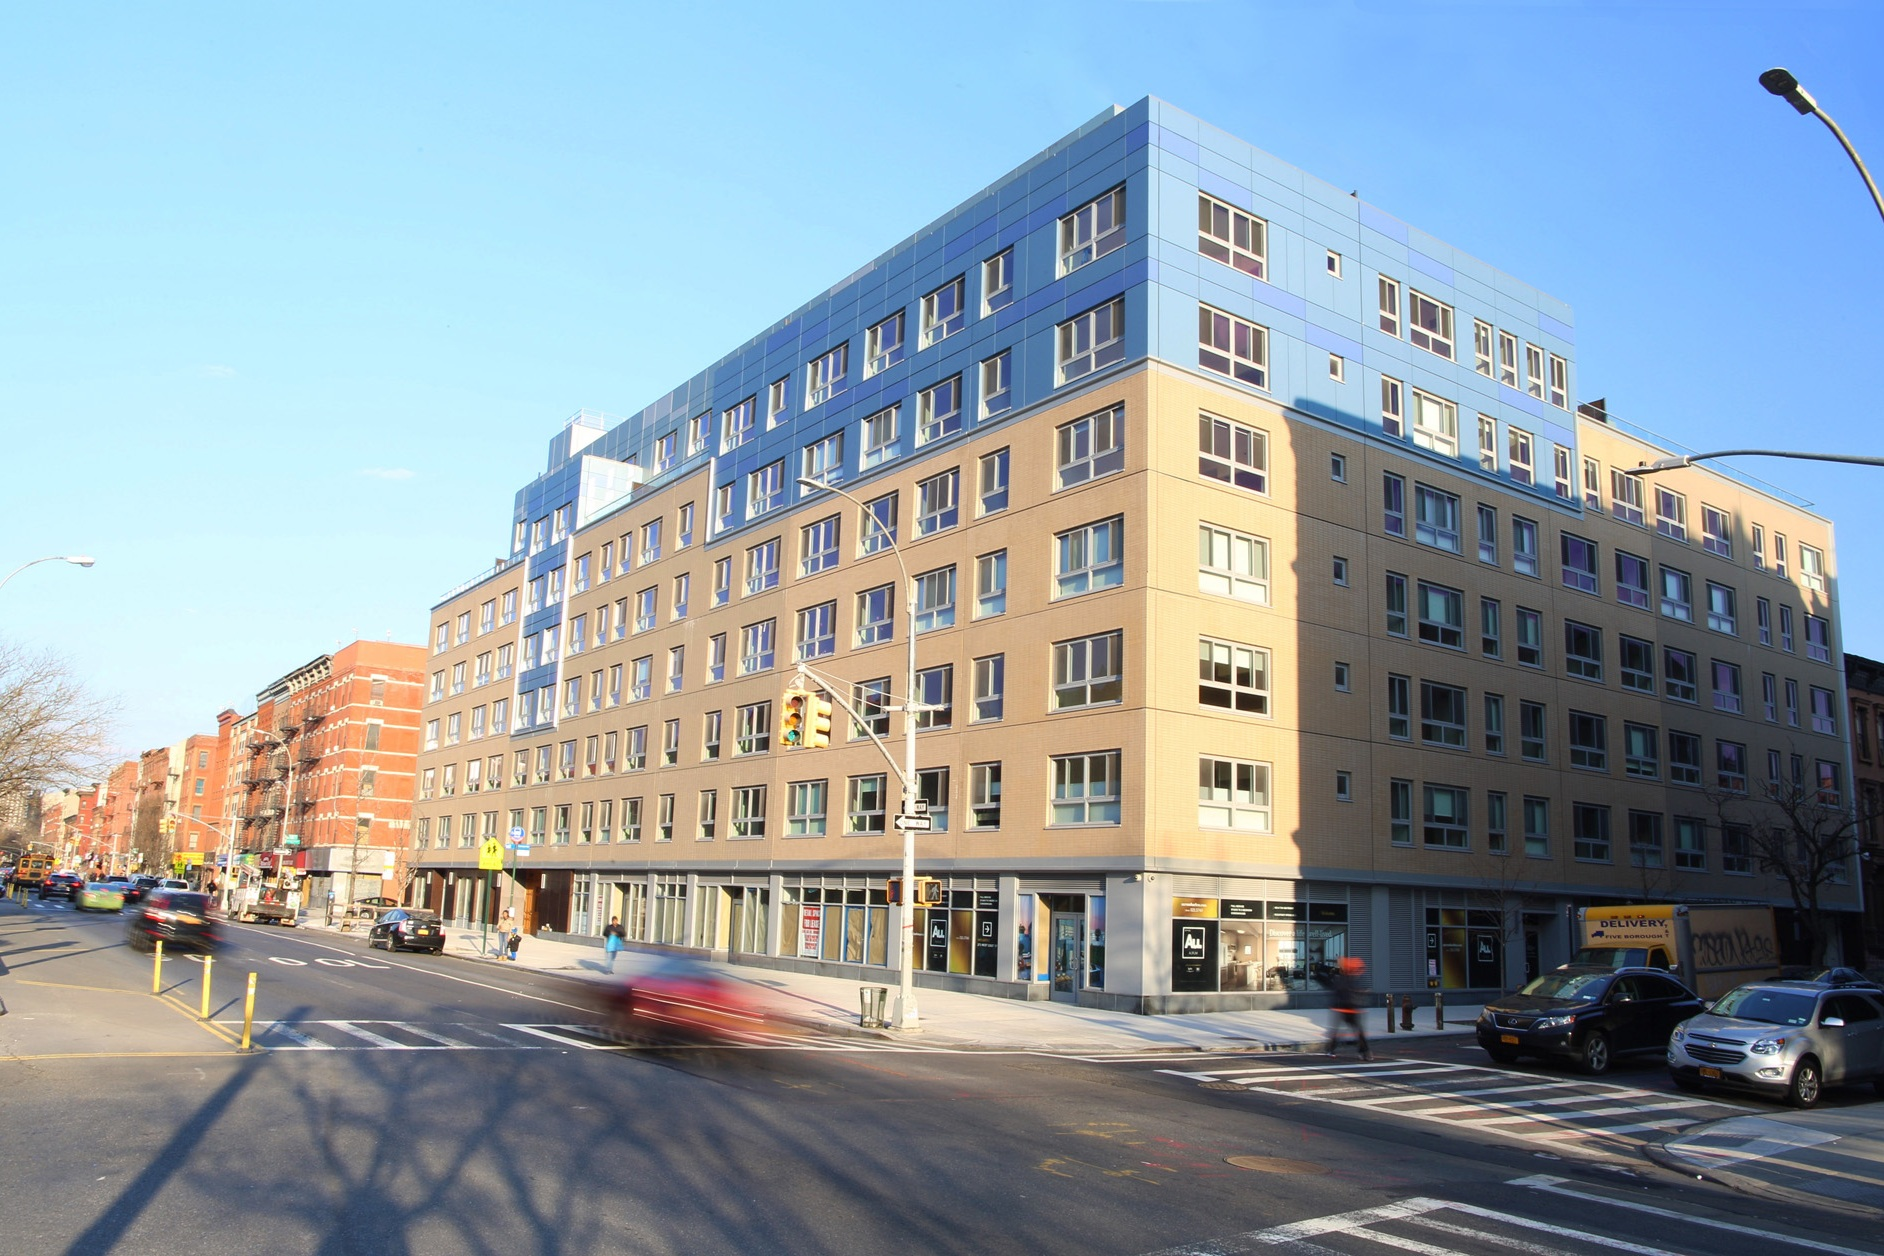 Aurum Condos in Harlem Near Completion - December 2016In 2013 we took over management of a portfolio of projects that was closing its doors. The first project, the 115-unit Aurum Condominiums in Harlem, nears completion.